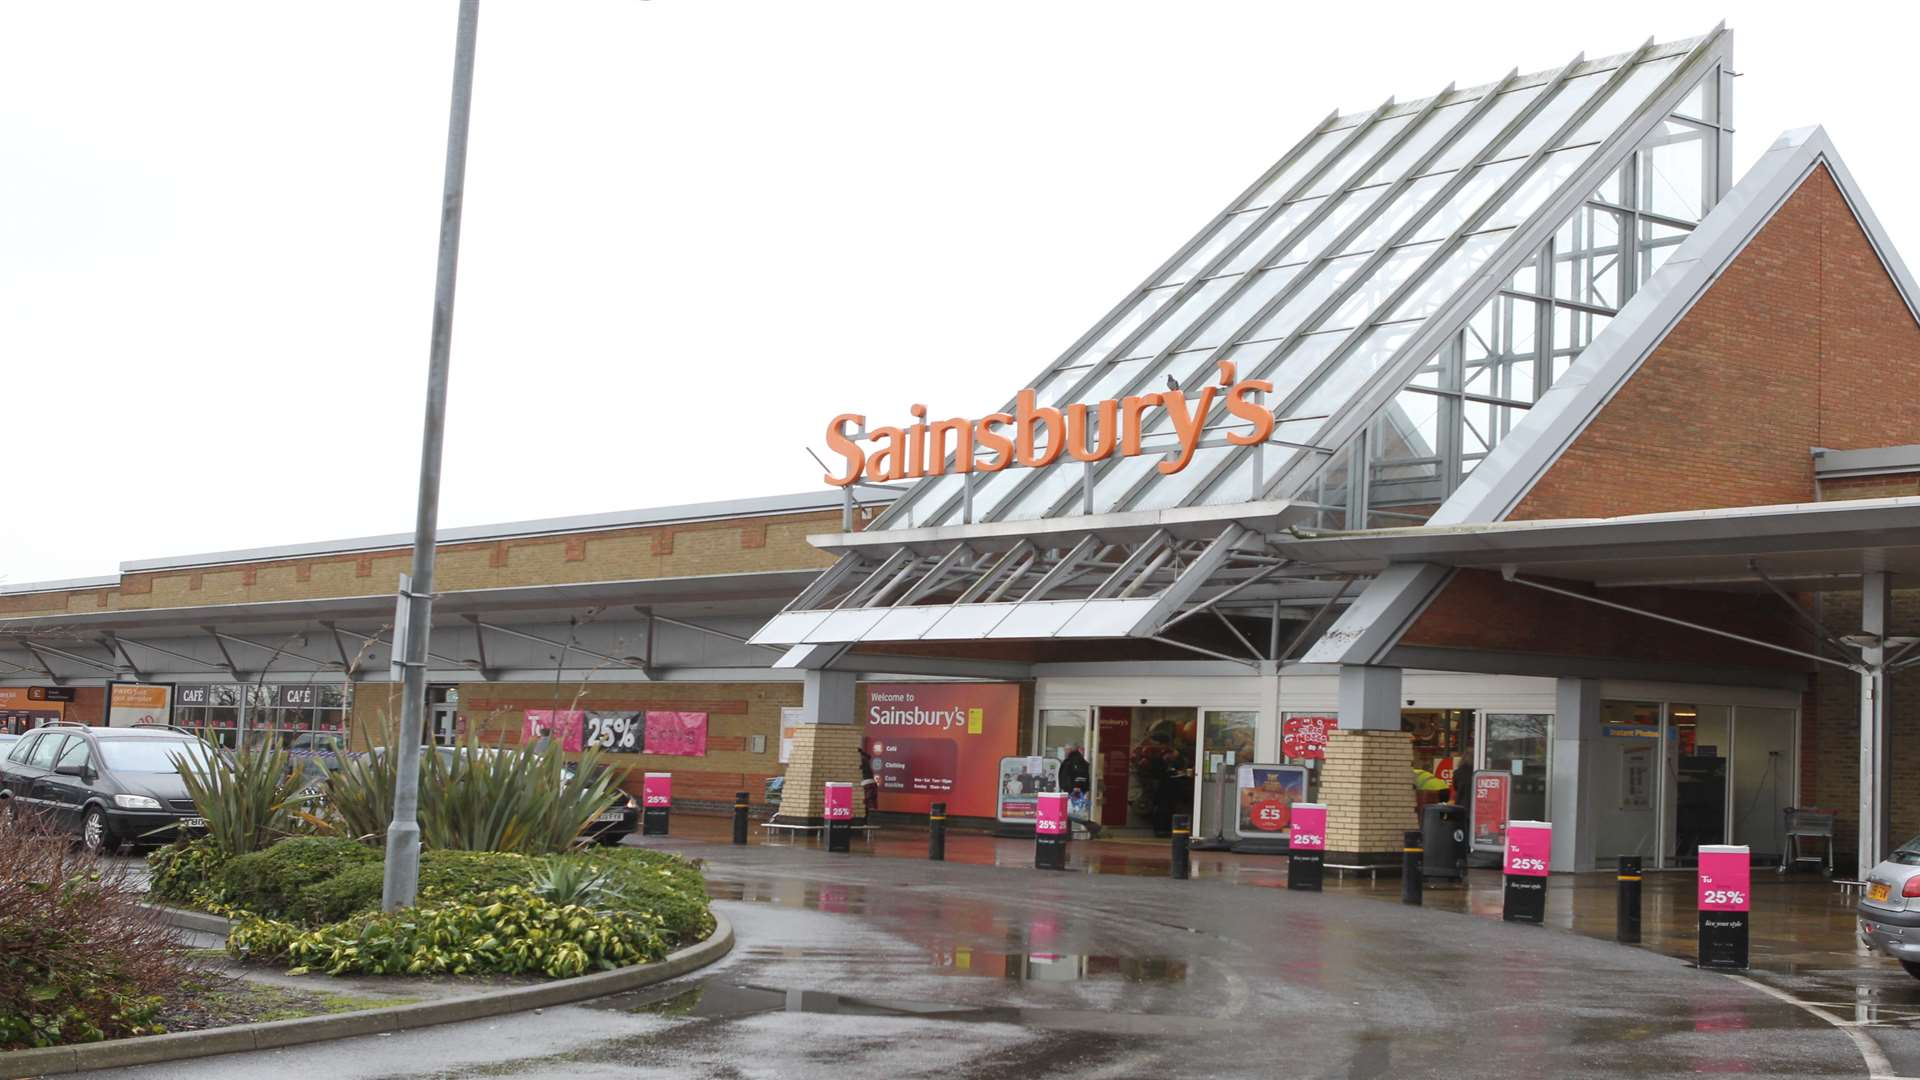 Sainsbury Supermarket in Sittingbourne.